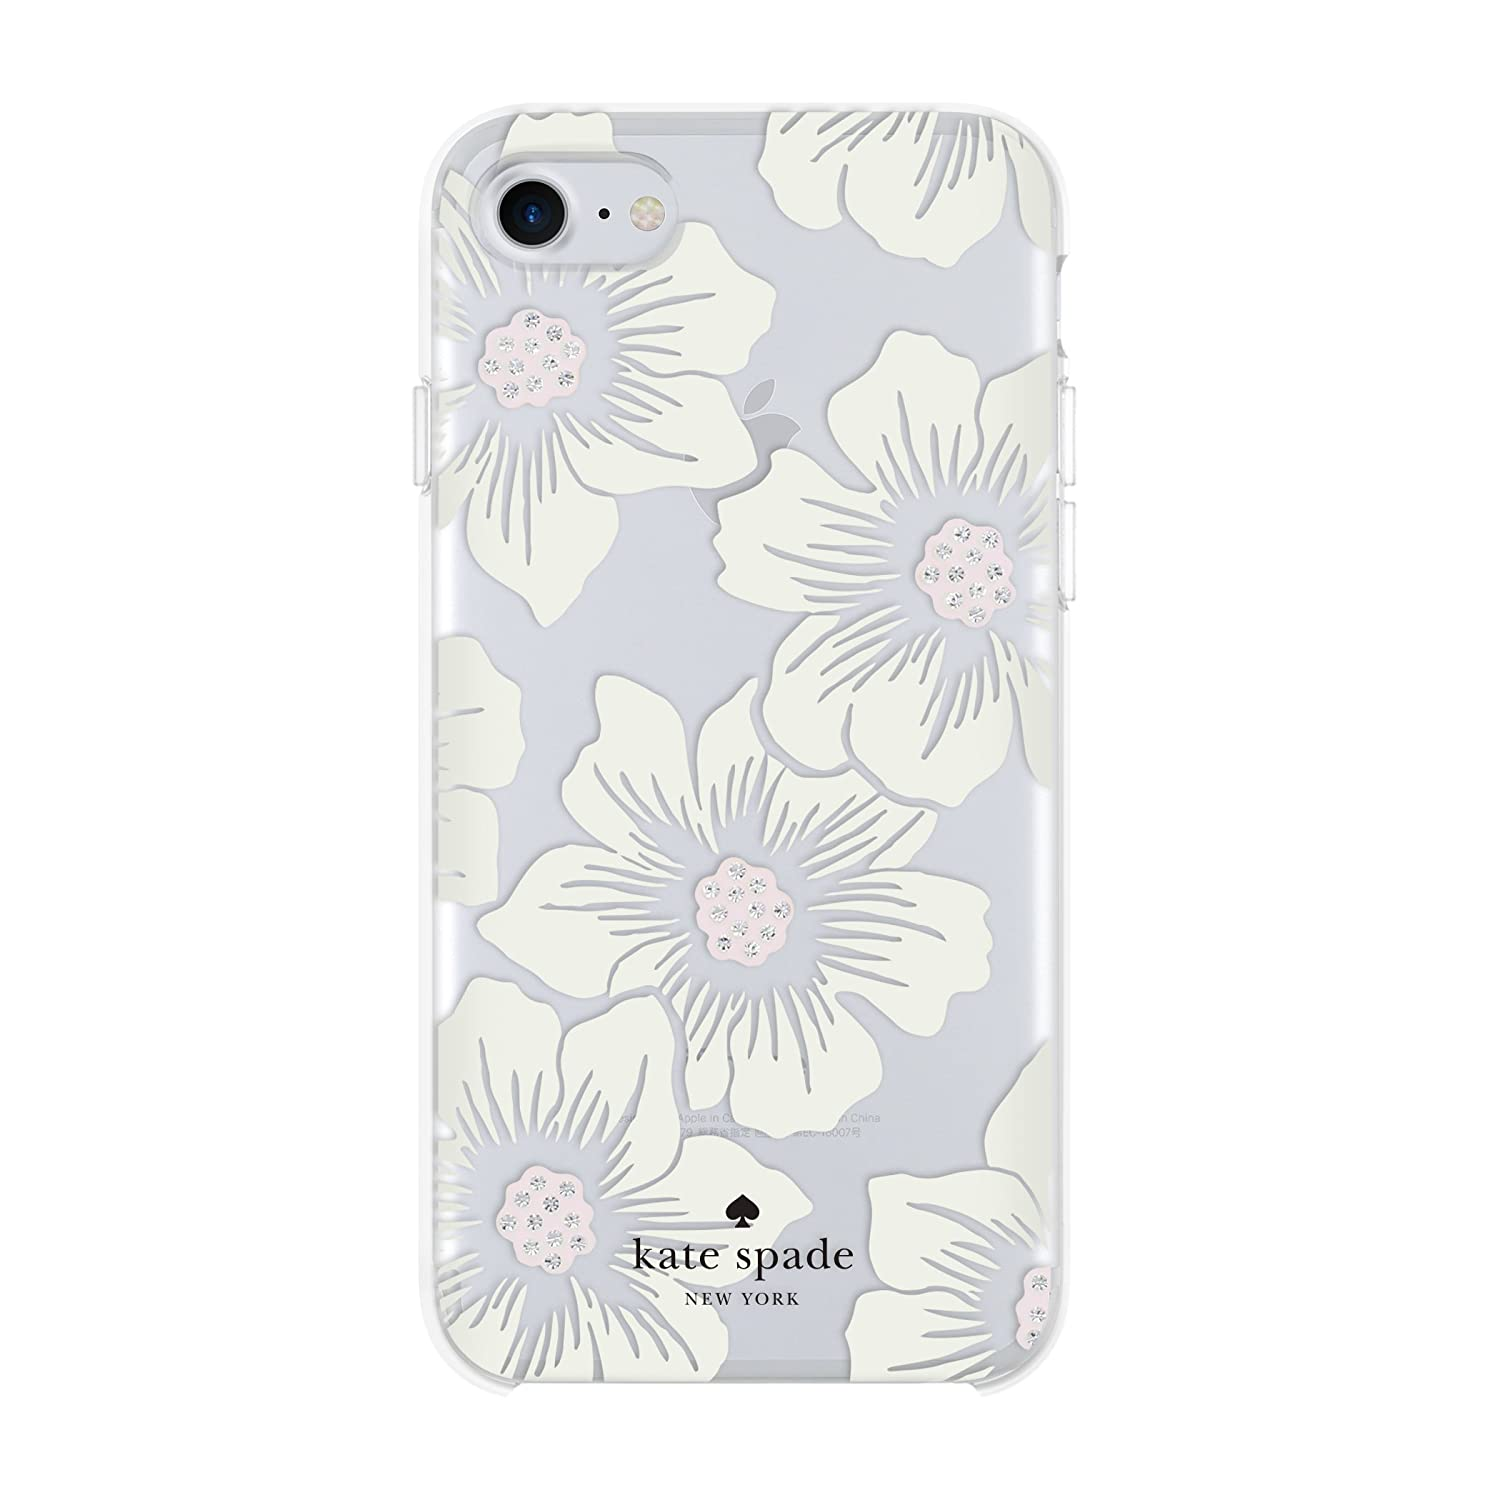 Kate Spade New York Phone Case|For Apple iPhone 8, iPhone 7, iPhone 6S, and iPhone 6|Protective Phone Cases with Slim Design, Drop Protection,and Floral Print-Hollyhock Cream/Blush/Crystal Gems/Clear